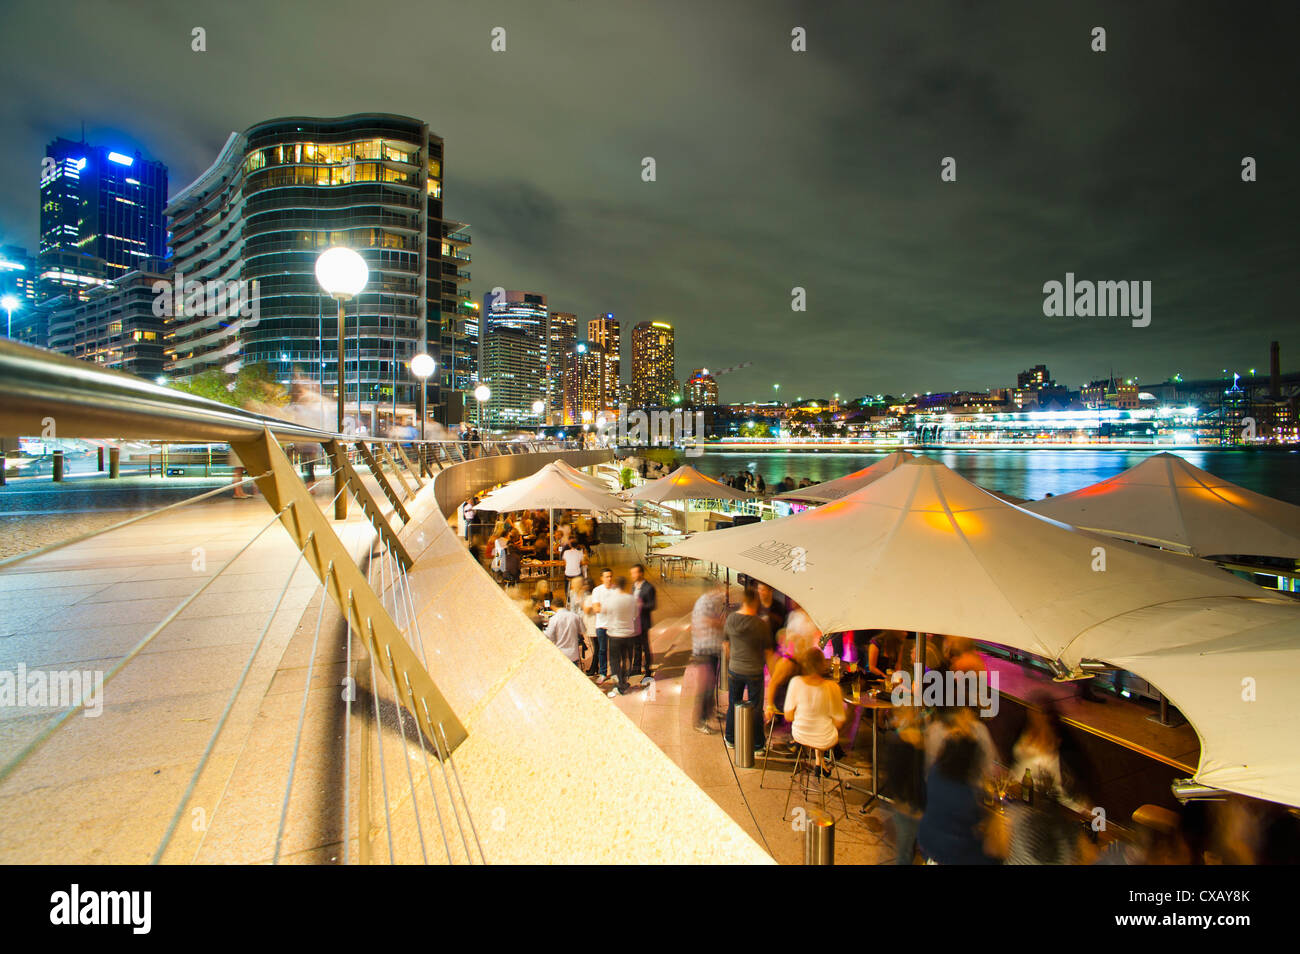 Opera Bar and Circular Quay at night, Syndey, New South Wales, Australia, Pacific - Stock Image